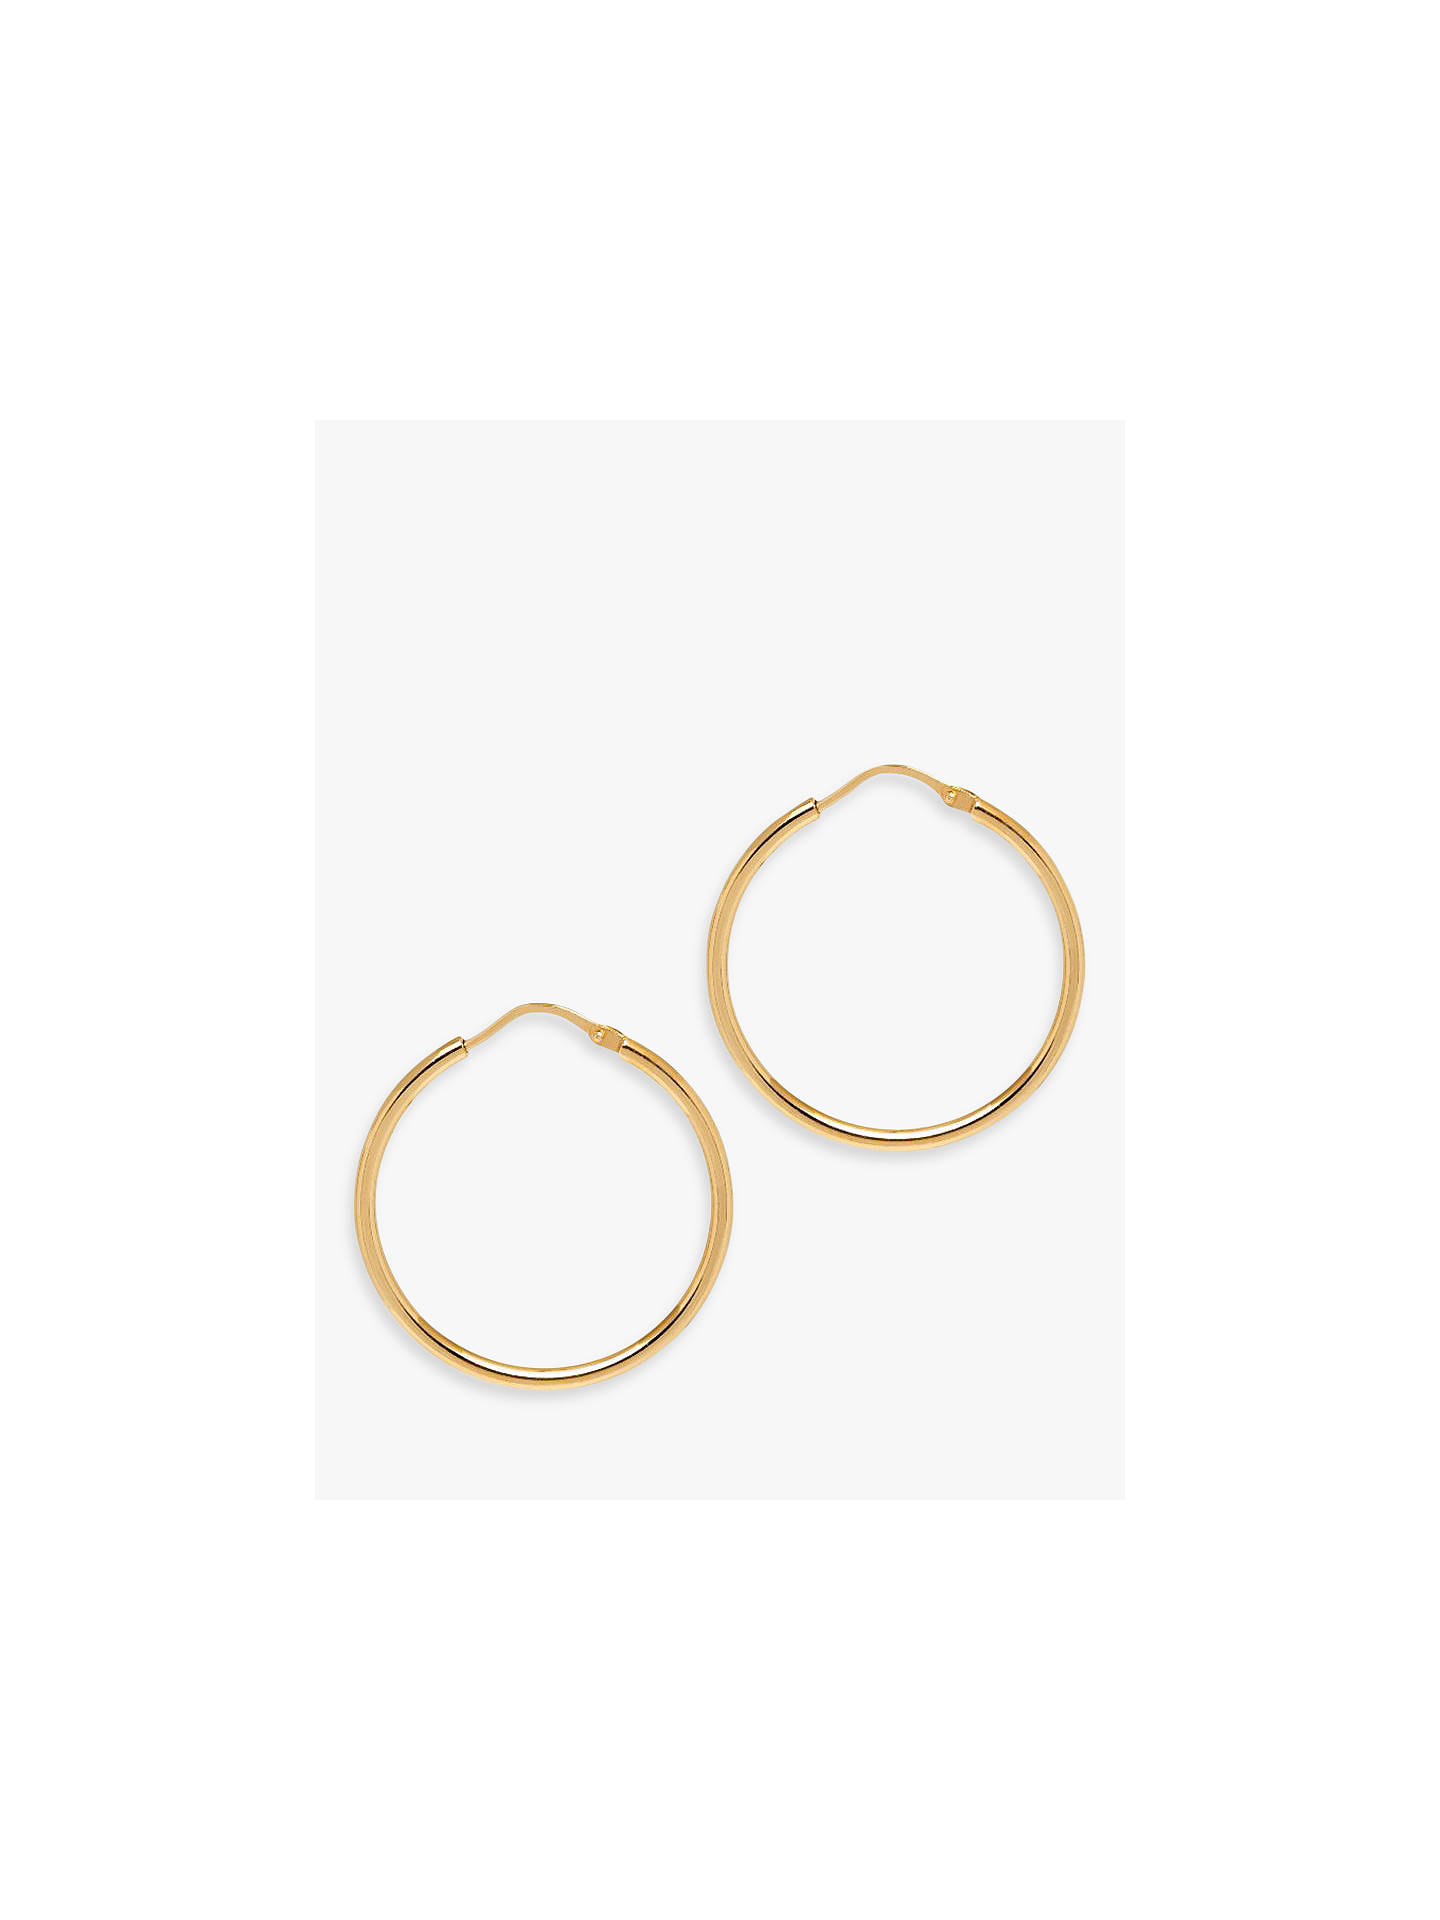 BuyThe Hoop Station La Chica Latina Small Hoop Earrings, 2.7cm, Gold Online at johnlewis.com